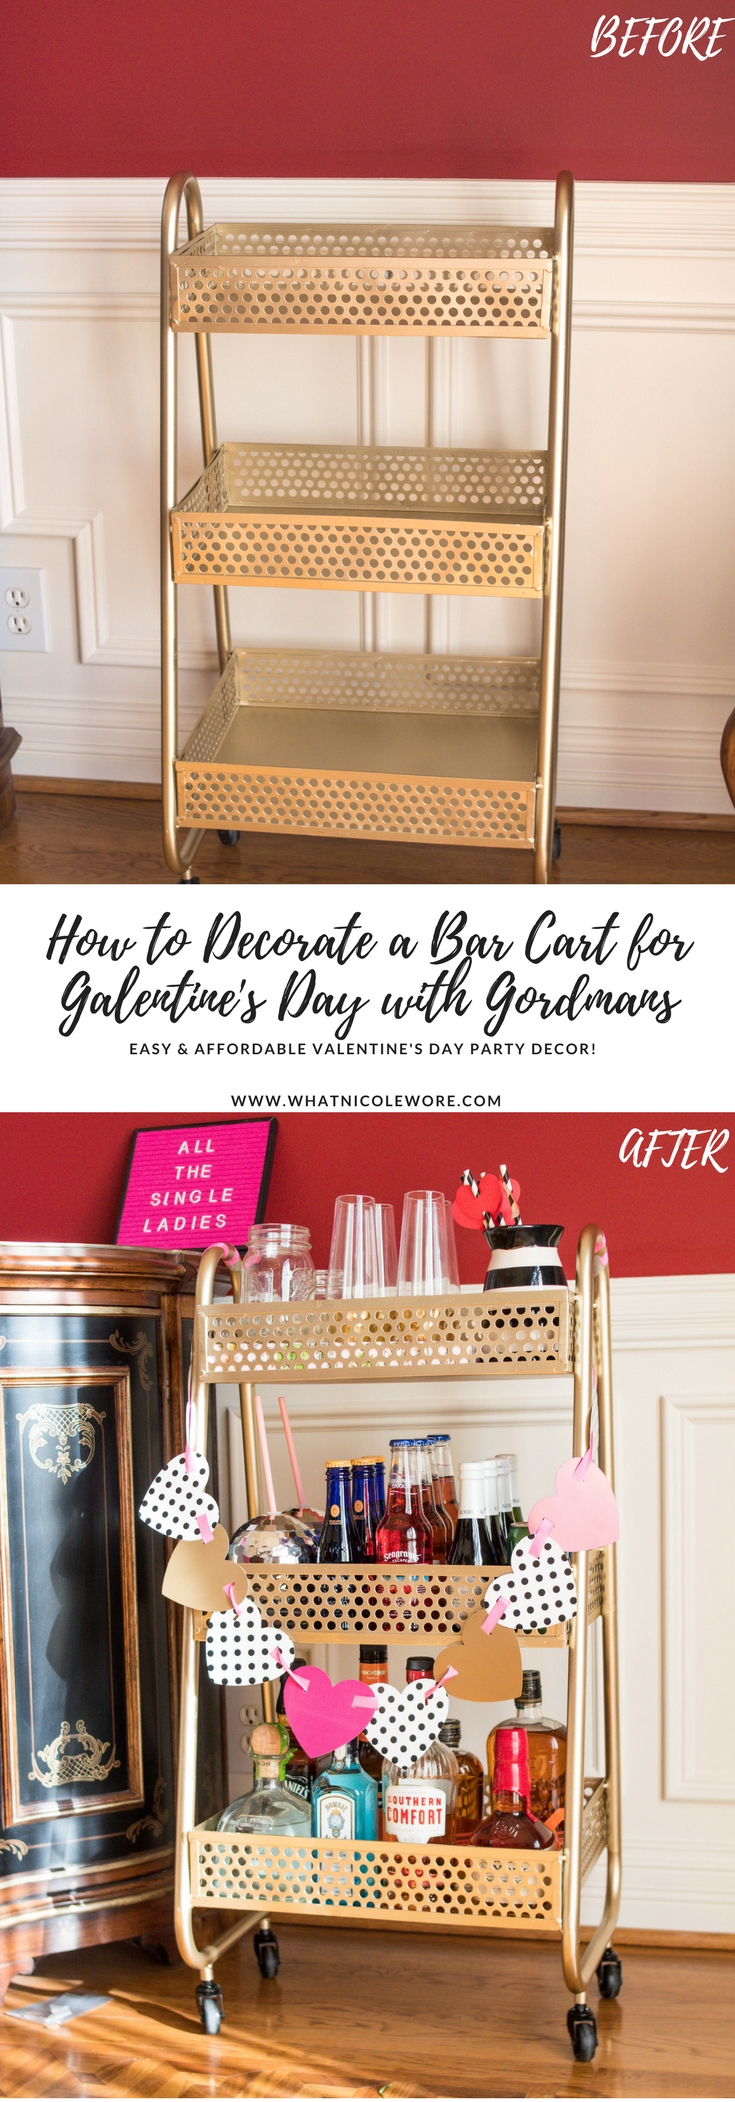 Southern Lifestyle Blogger, What Nicole Wore, Shares How To Find An  Affordable Bar Cart